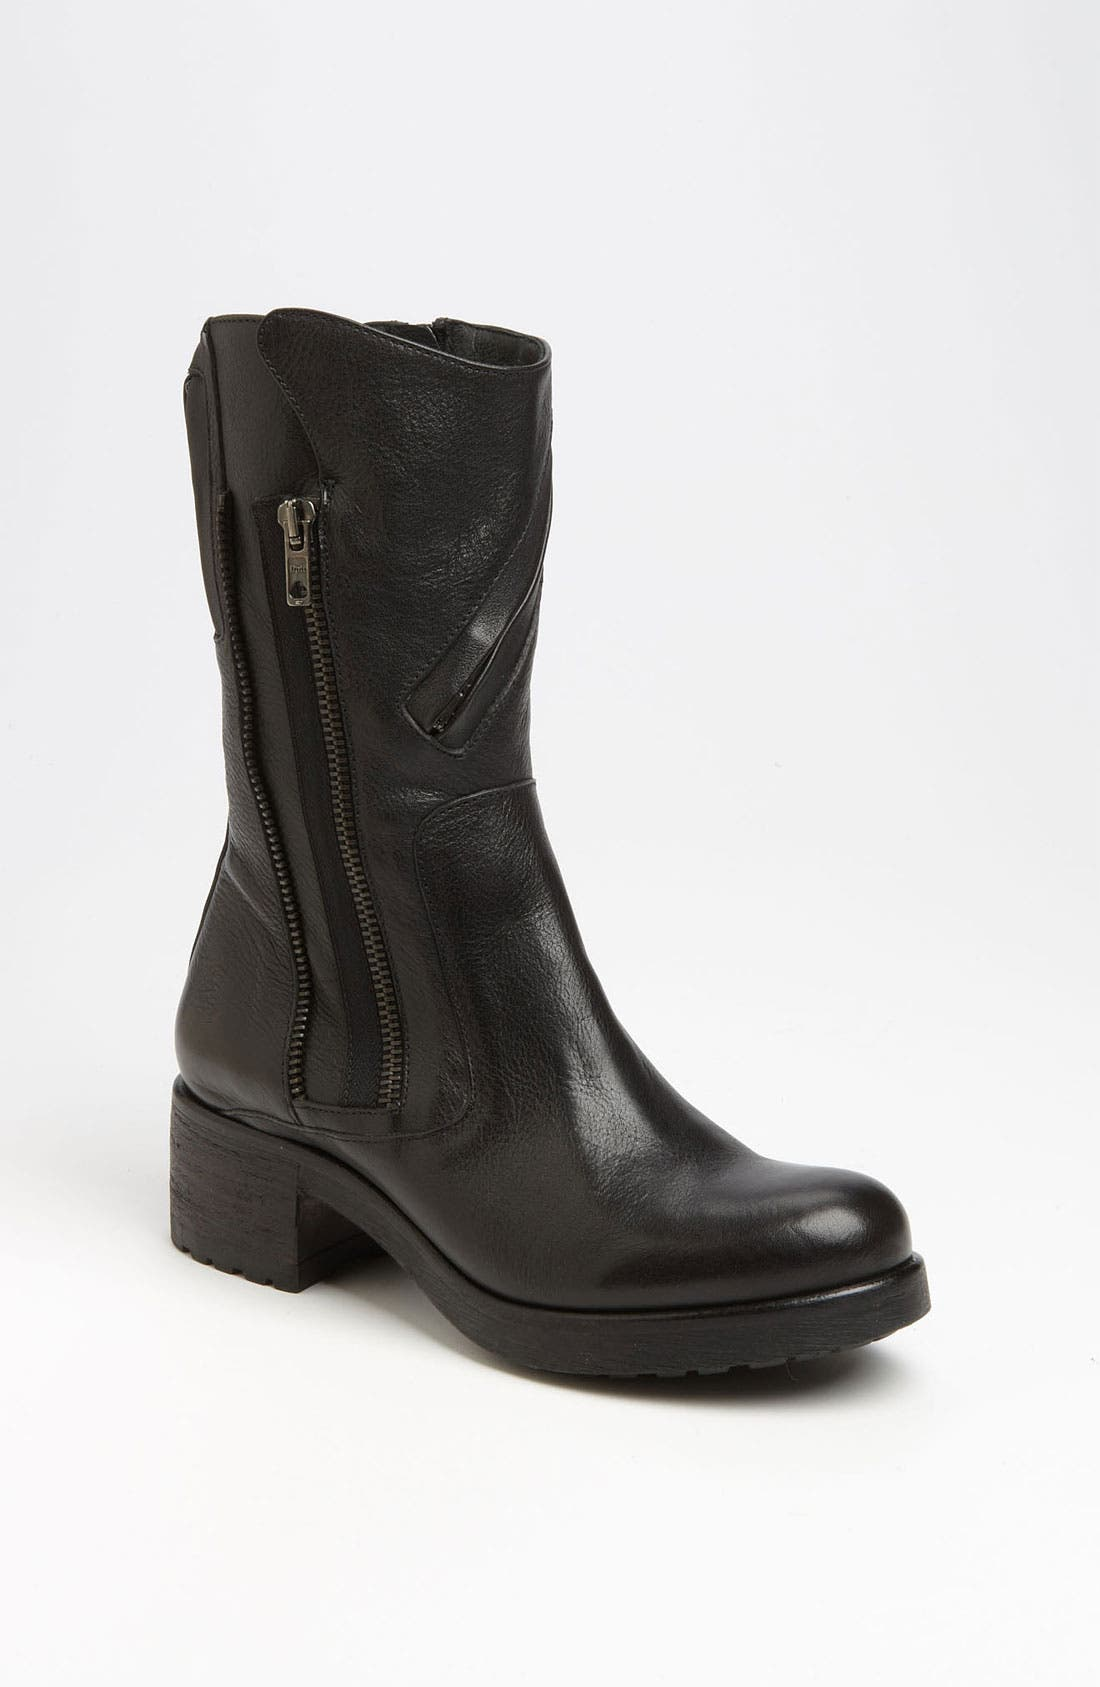 Main Image - Vera Wang Footwear 'Evie' Boot